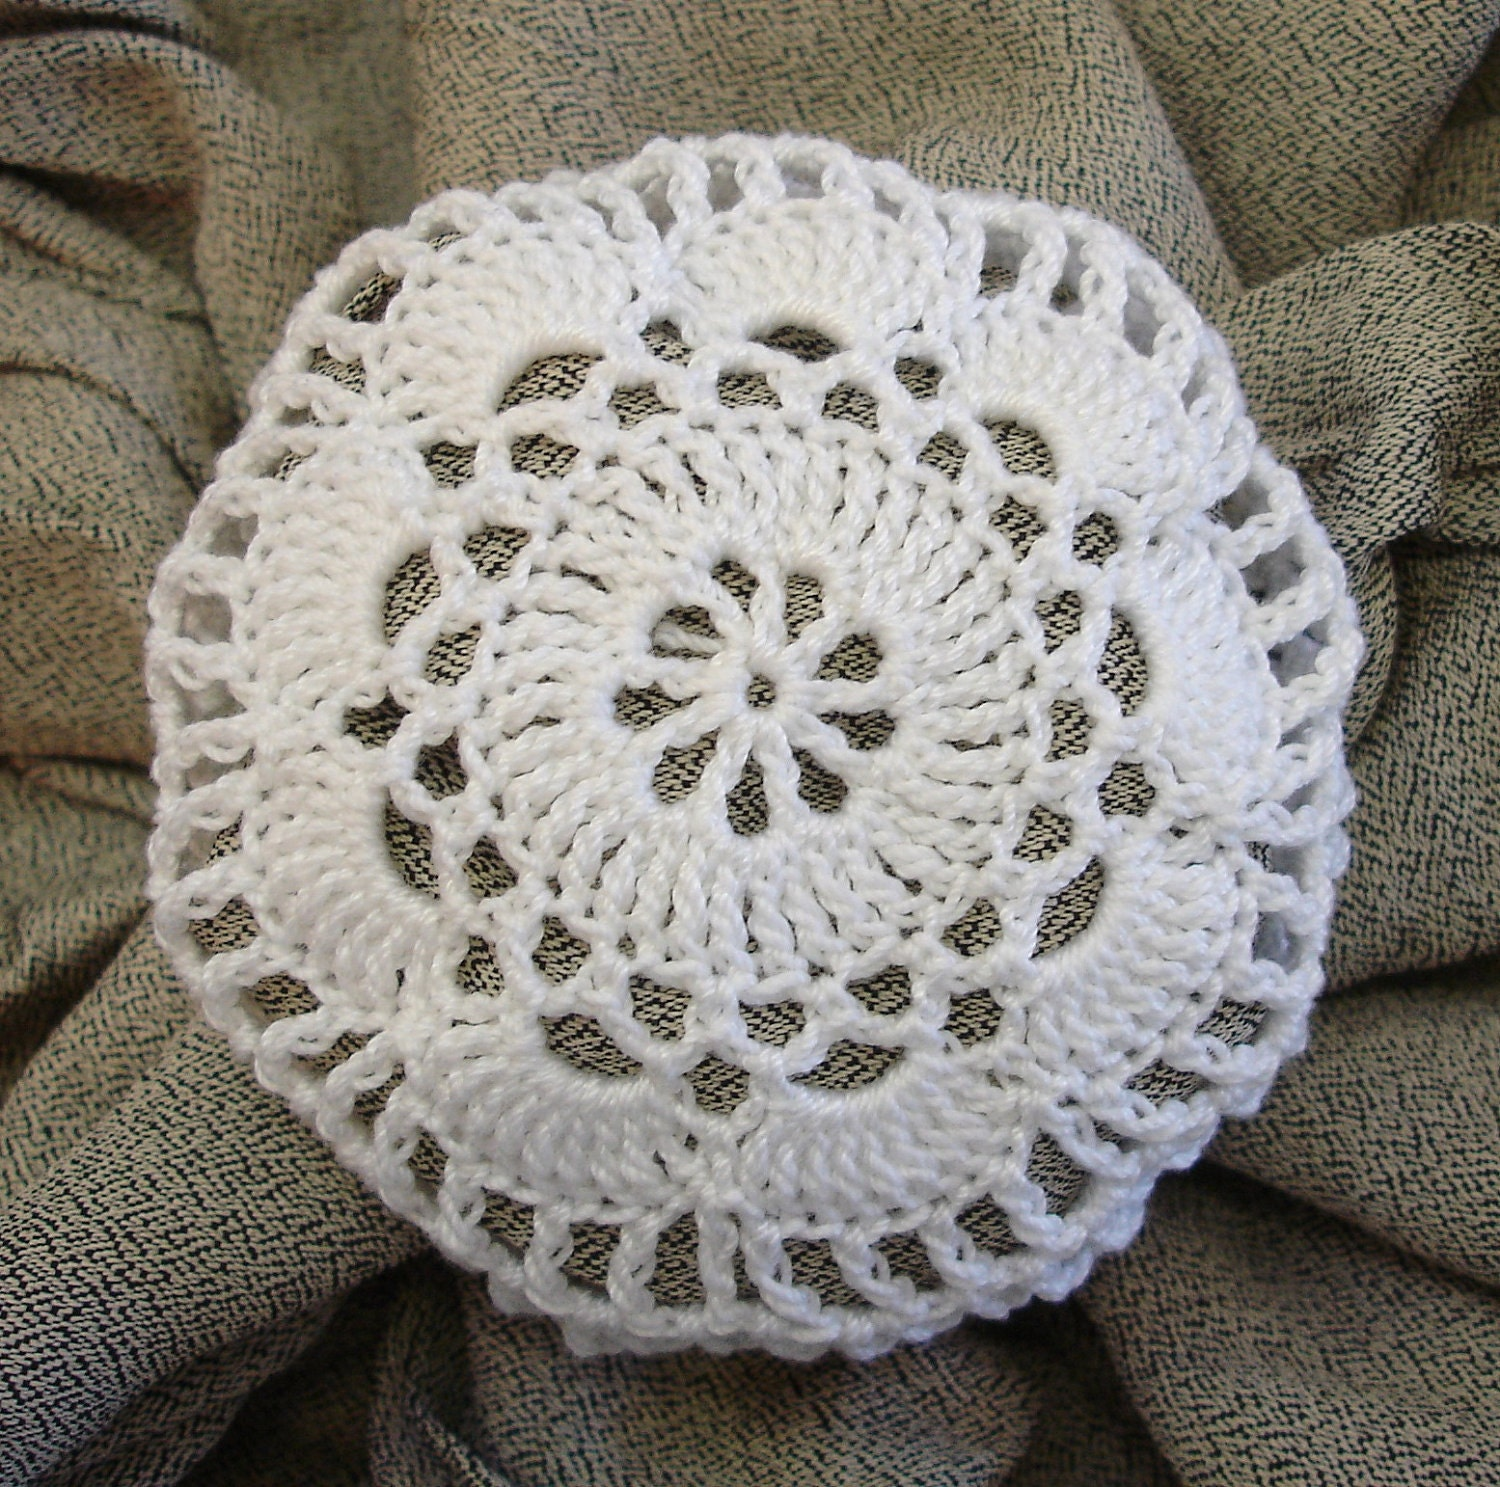 Crochet Hair Net Bun Cover Pattern : Hair Net / Bun Cover Crocheted White Flower Style by mydesertdeals